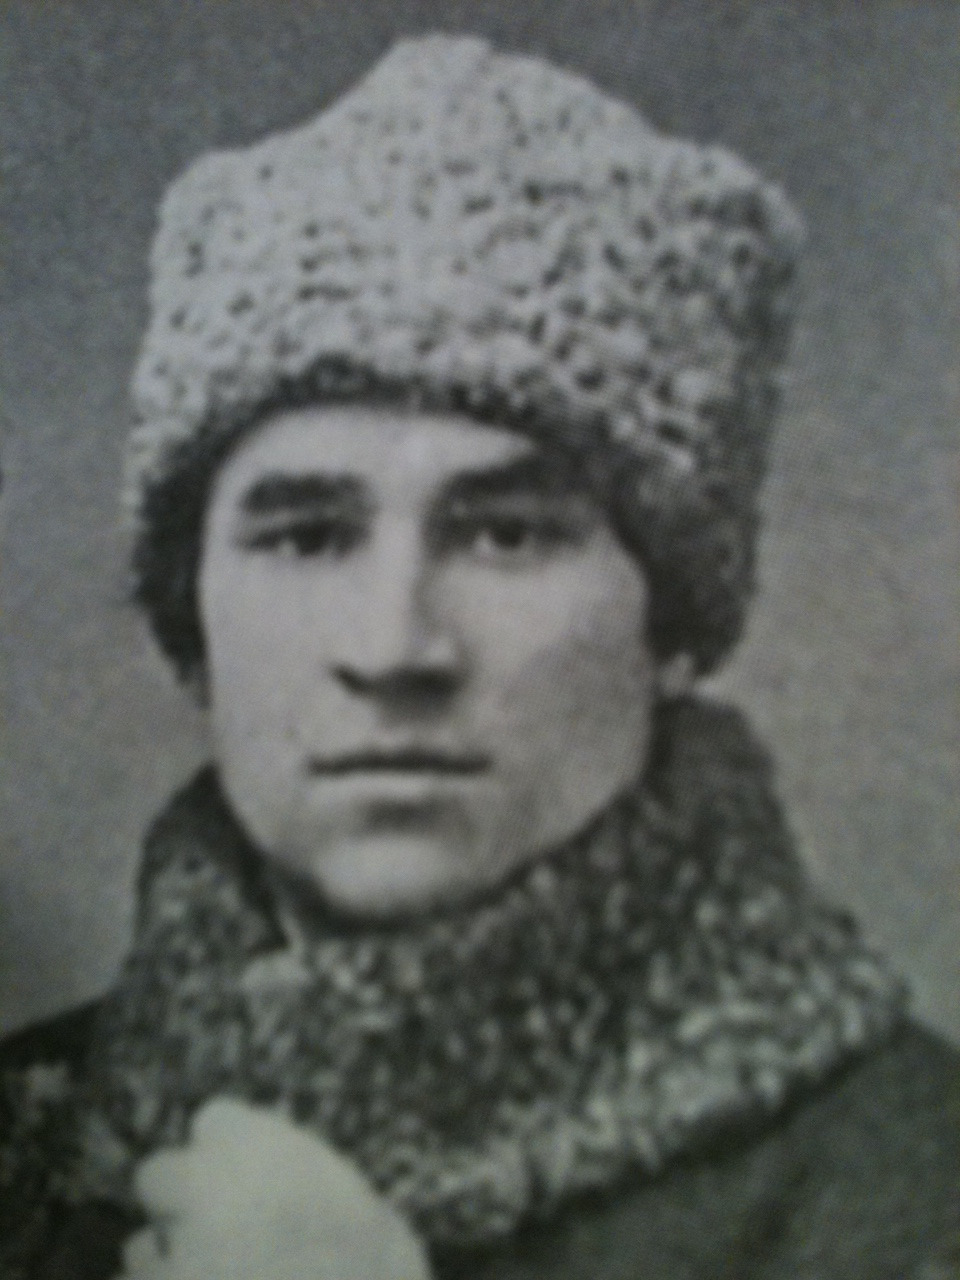 Mirsaid Sultan Galiev, c. 1919. Communist, warrior, and wouldn't you know it, a poet. Executed by Stalin in 1940 for promoting Muslim ideology within communism, he remained a passionate Bolshevik:   The love for my people, which lies inherently inside me, draws me to them. I go to them not with a goal to betray our nation, not in order to drink its blood. No! No! I go there because with my whole spirit I believe in the rightness of the Bolsheviks' cause. I know this; it is my conviction. Thus, nothing will remove it from my soul.  Hot.  Submitted by Dana